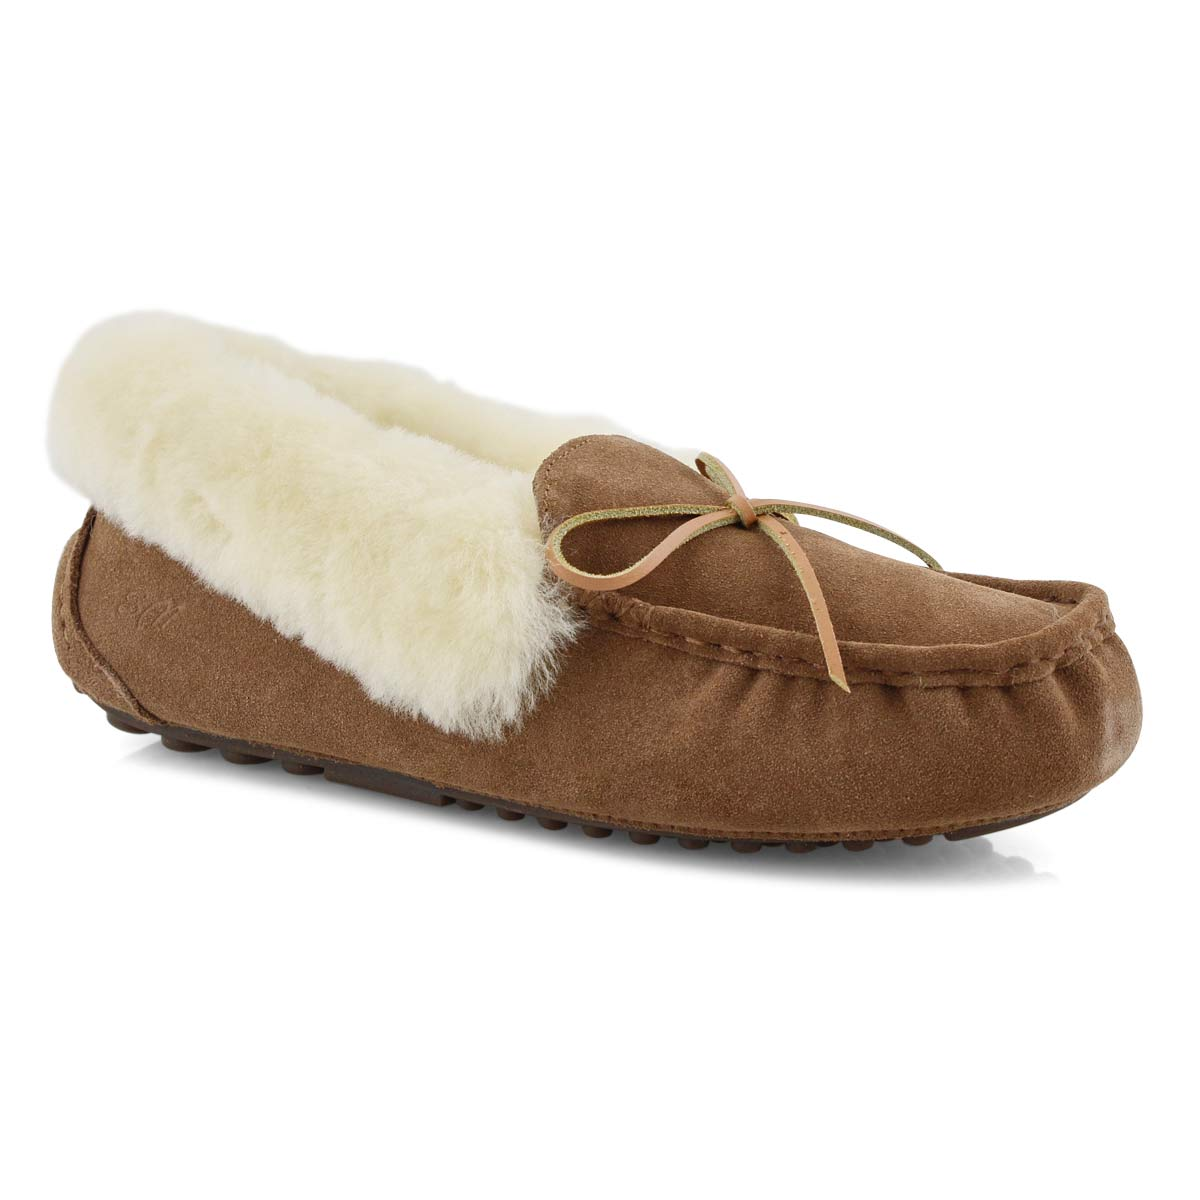 Lds Patty II ches shrlng lined suede moc